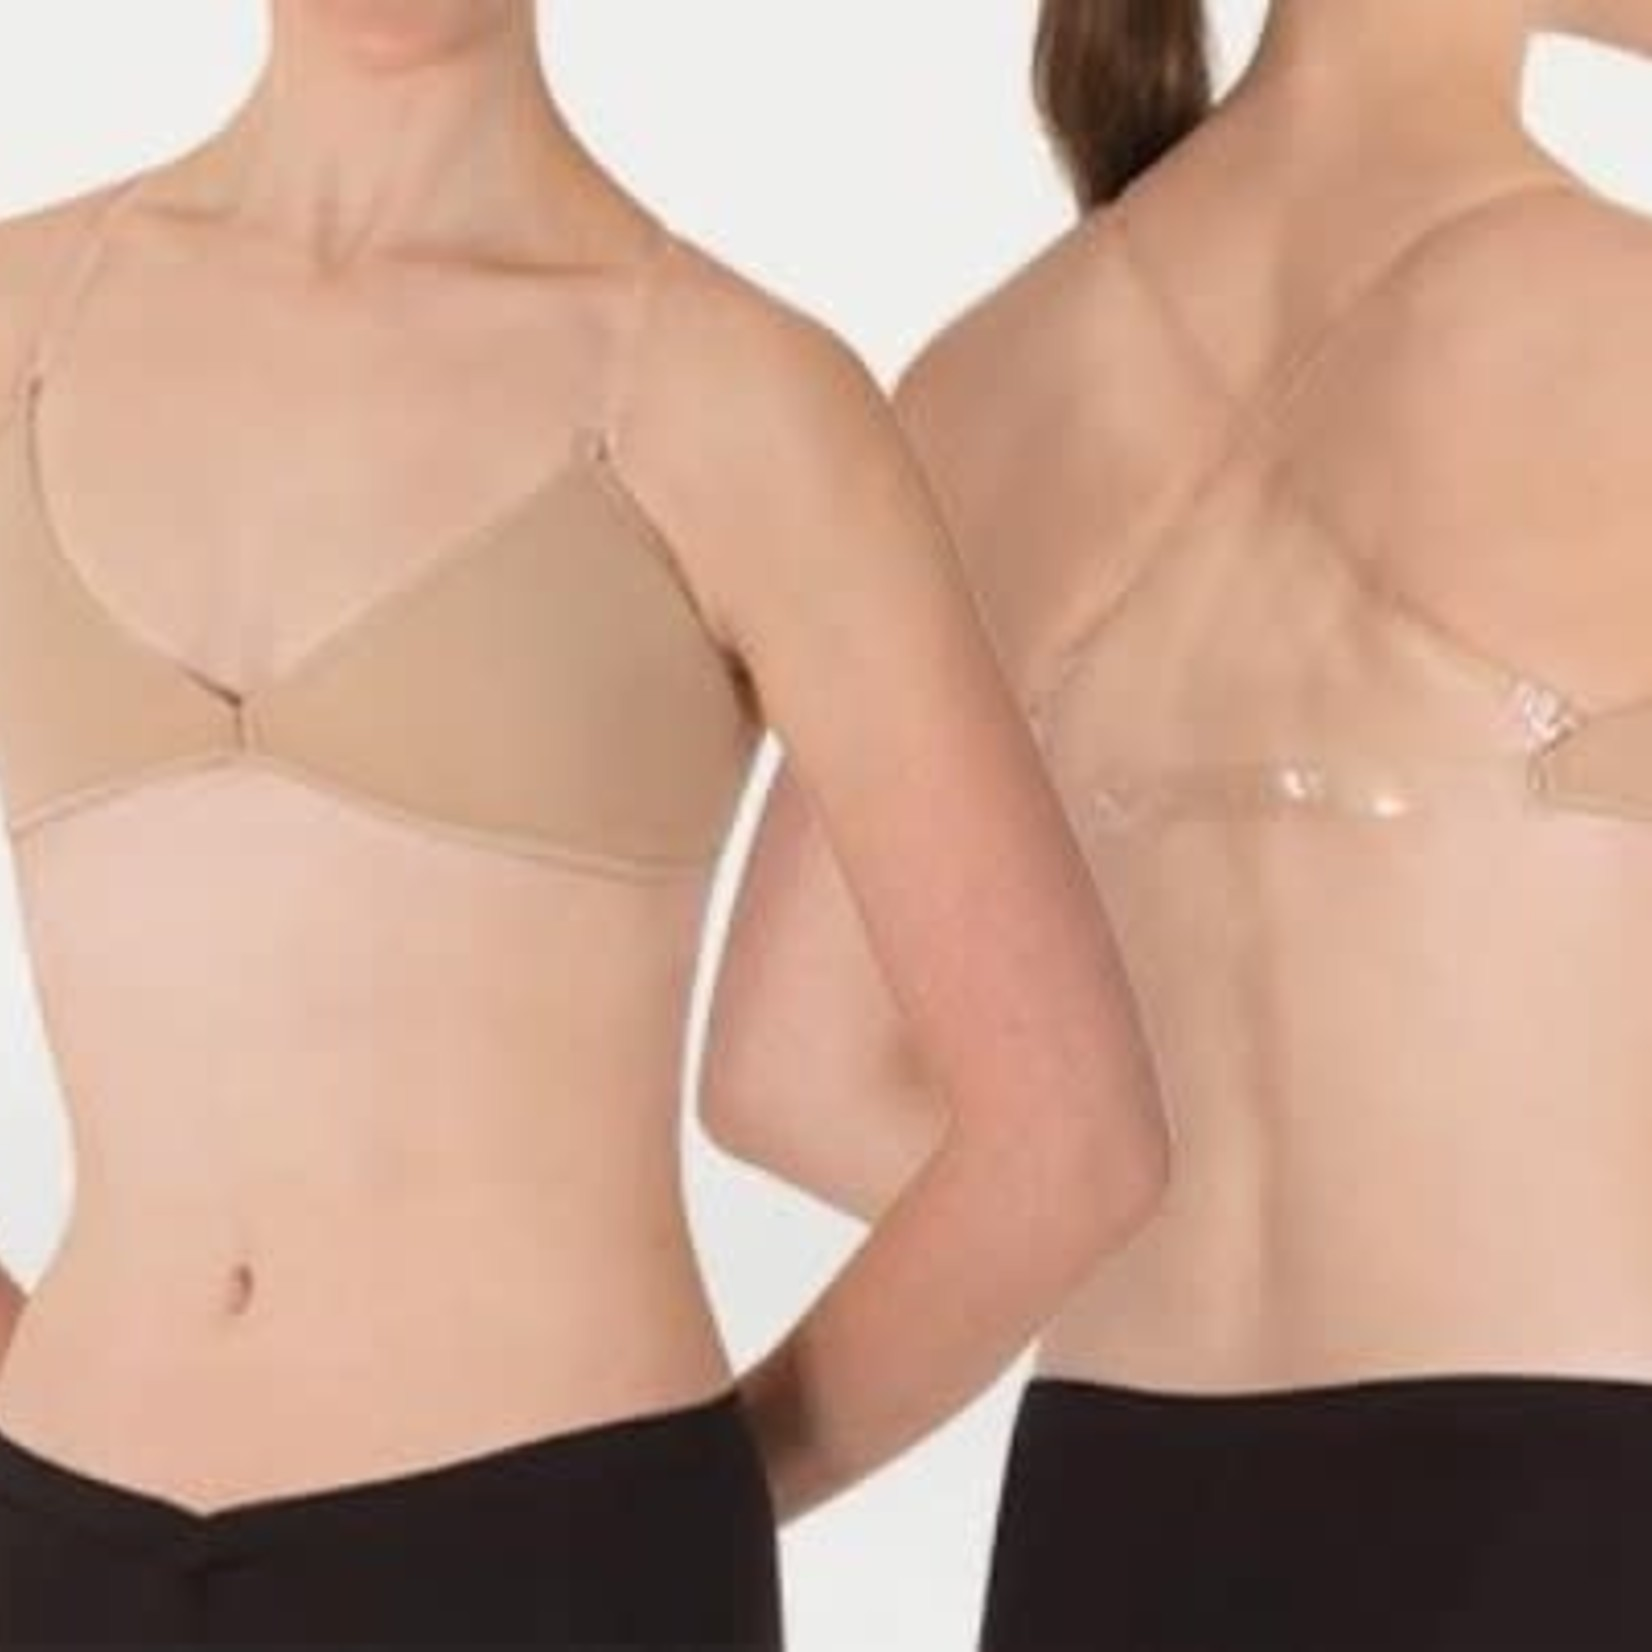 Body Wrappers Body Wrappers 283 Deep-V Clear Straps Bra